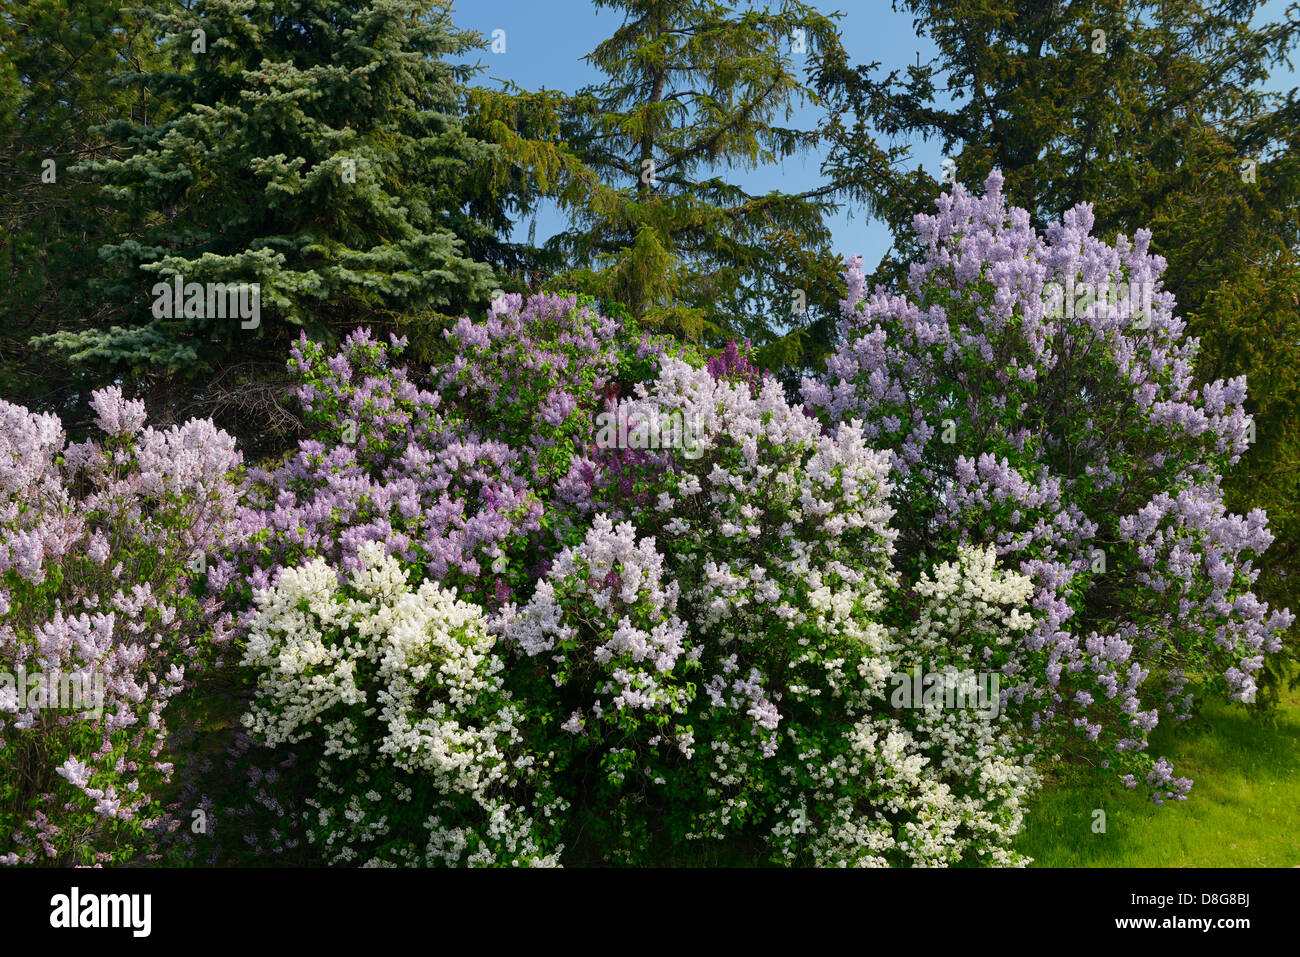 White to purple Common Lilac bushes flowering beside Spruce trees in Spring Toronto Canada - Stock Image